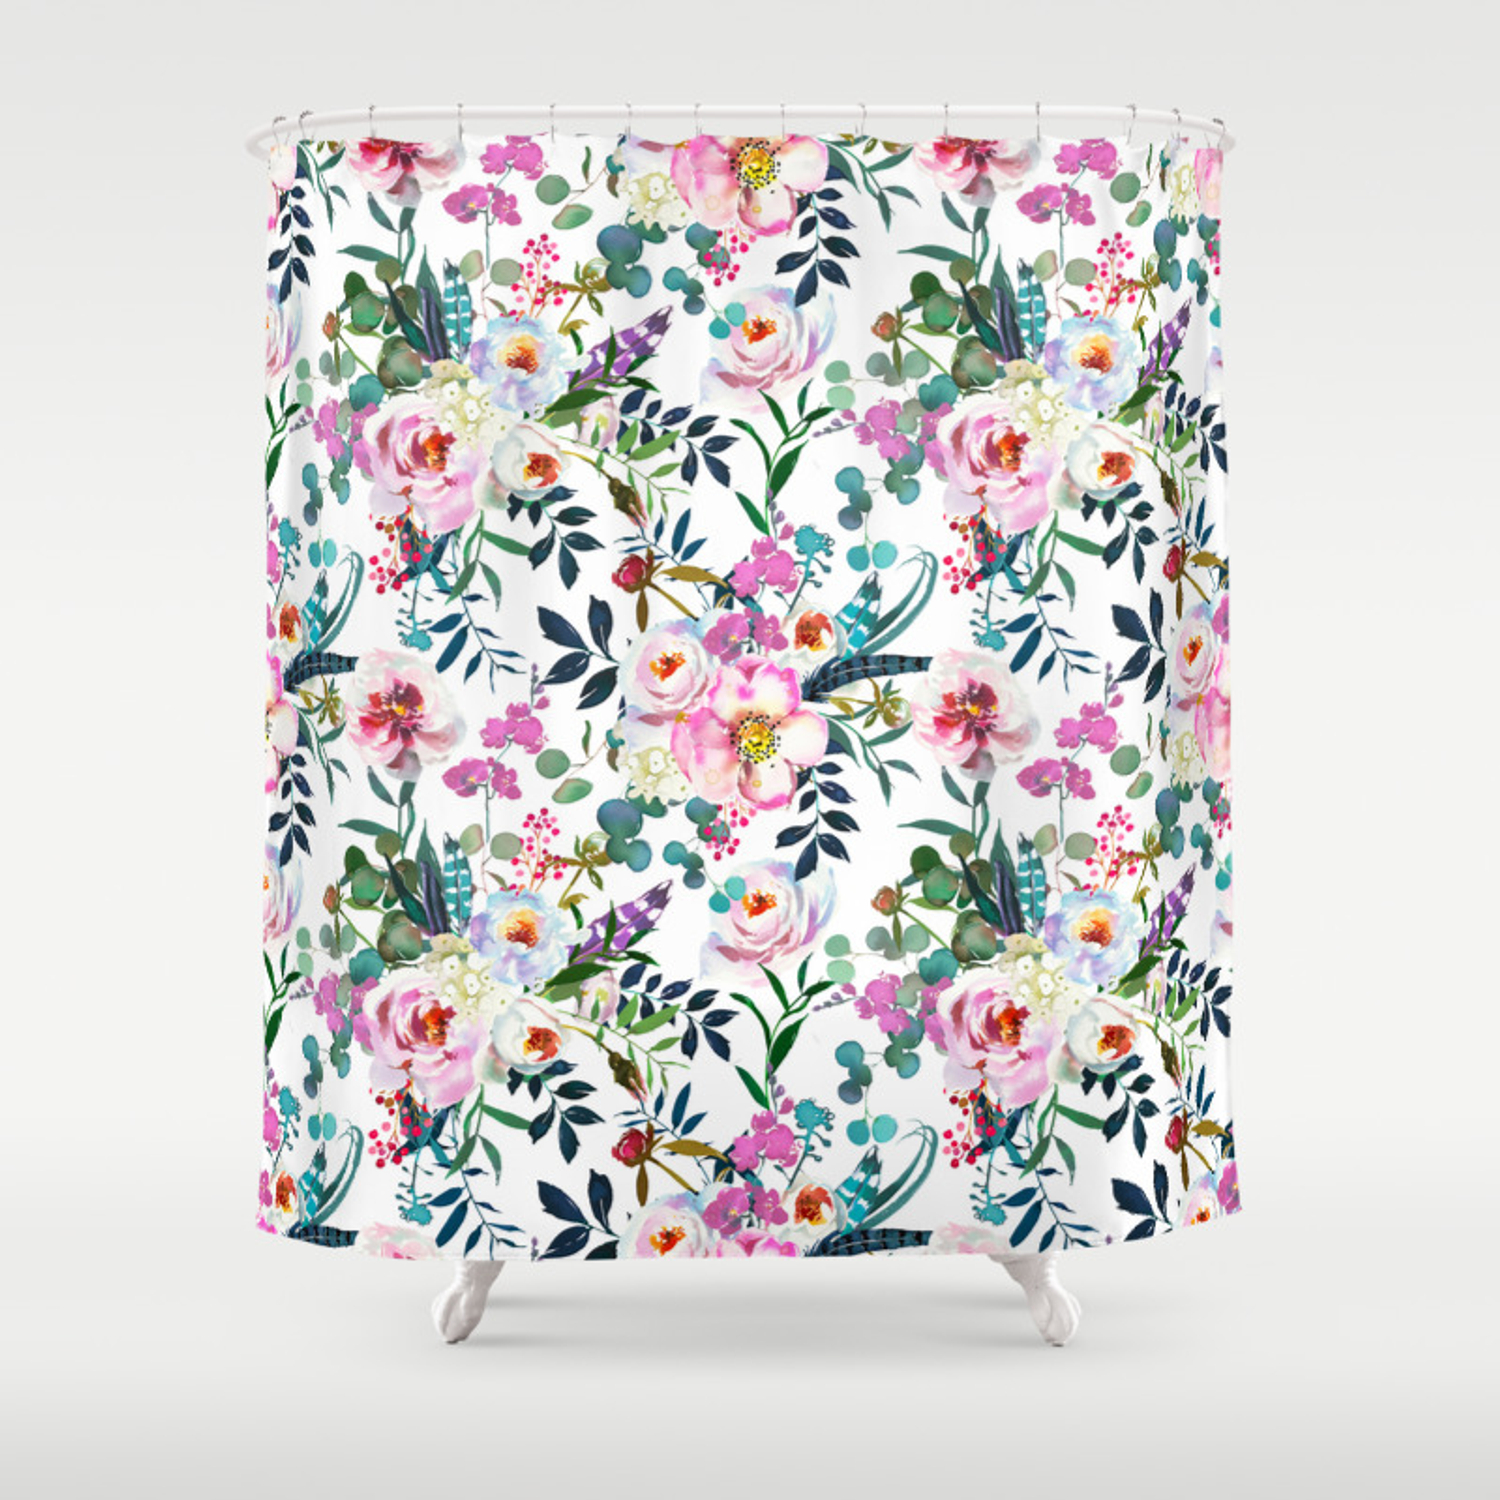 Pink Purple Green White Watercolor Bohemian Feathers Floral Shower Curtain By Pink Water Society6